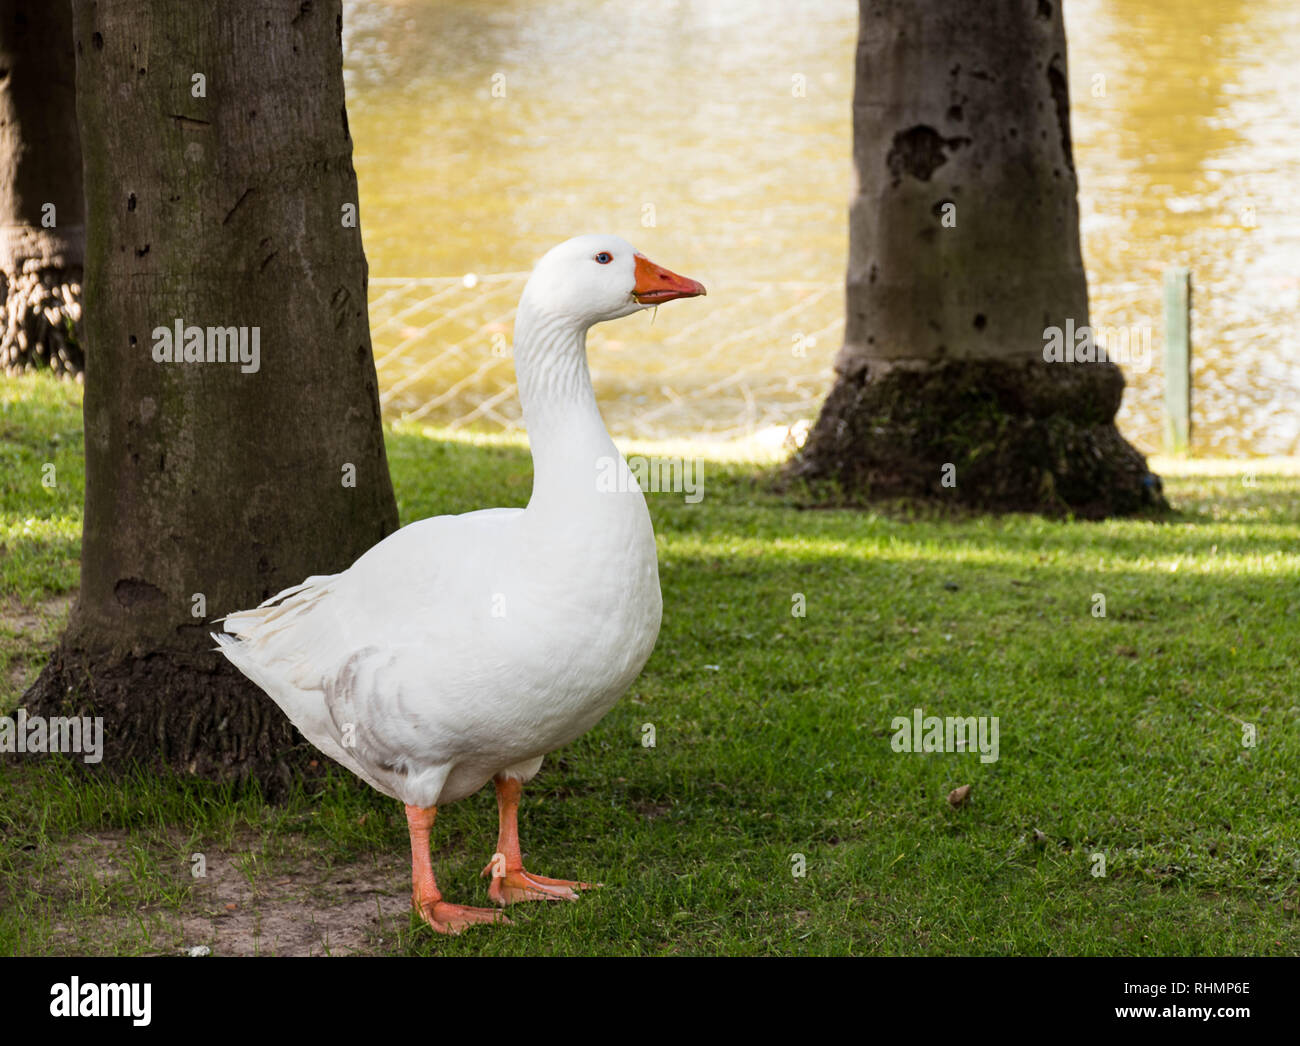 Anas platyrhynchos domesticus/ Domestic Duck by a lake. - Stock Image